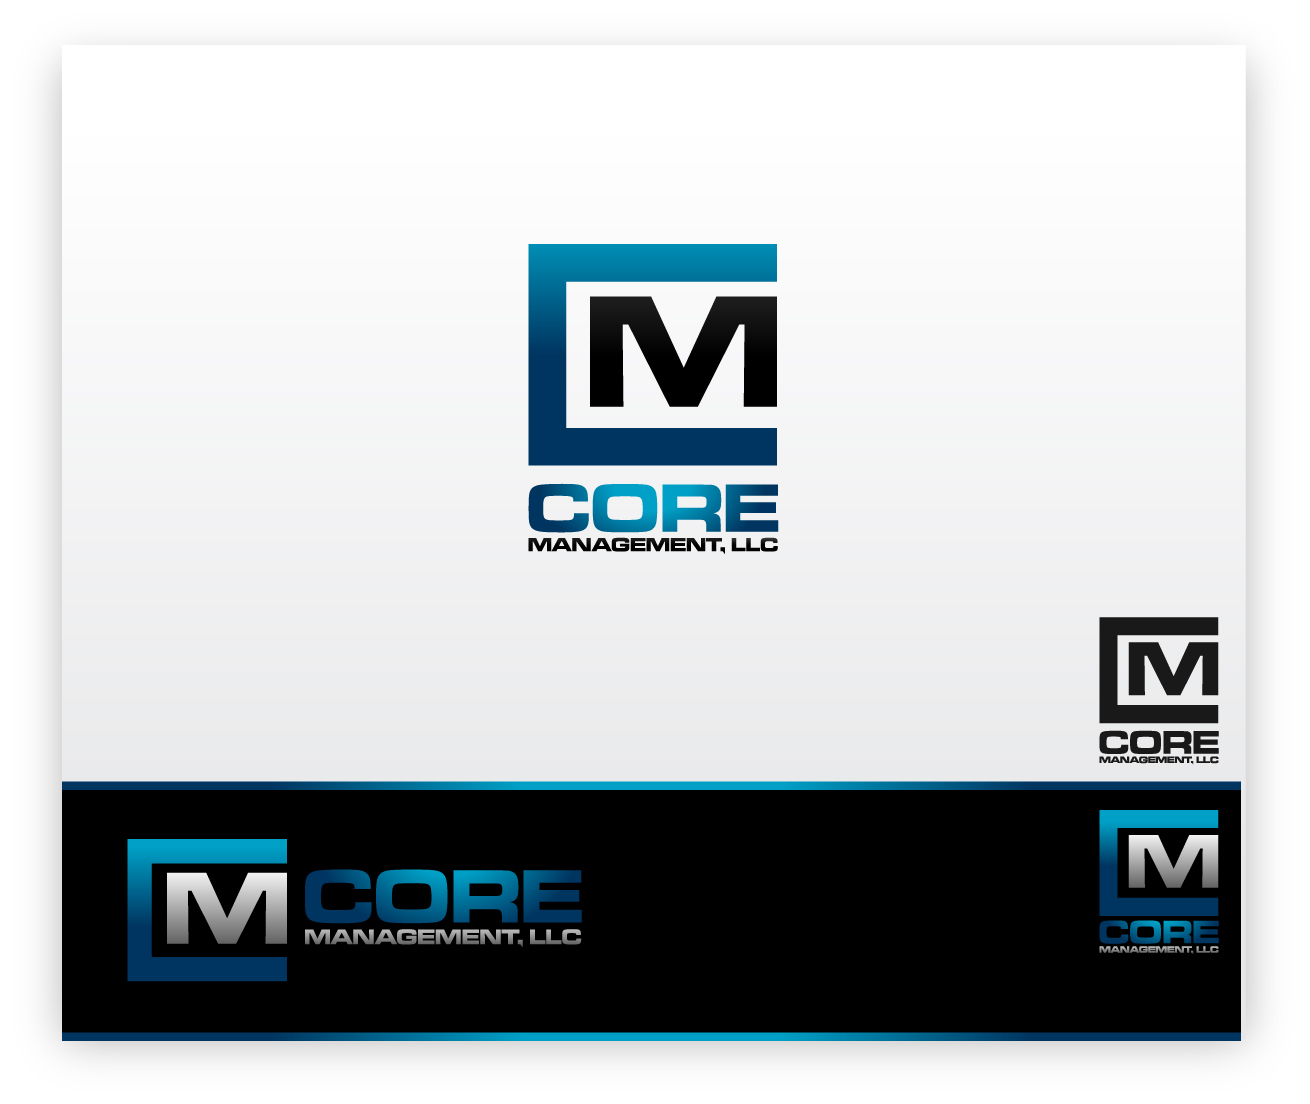 Logo Design by zoiDesign - Entry No. 142 in the Logo Design Contest Creative Logo Design for CORE Management, LLC.